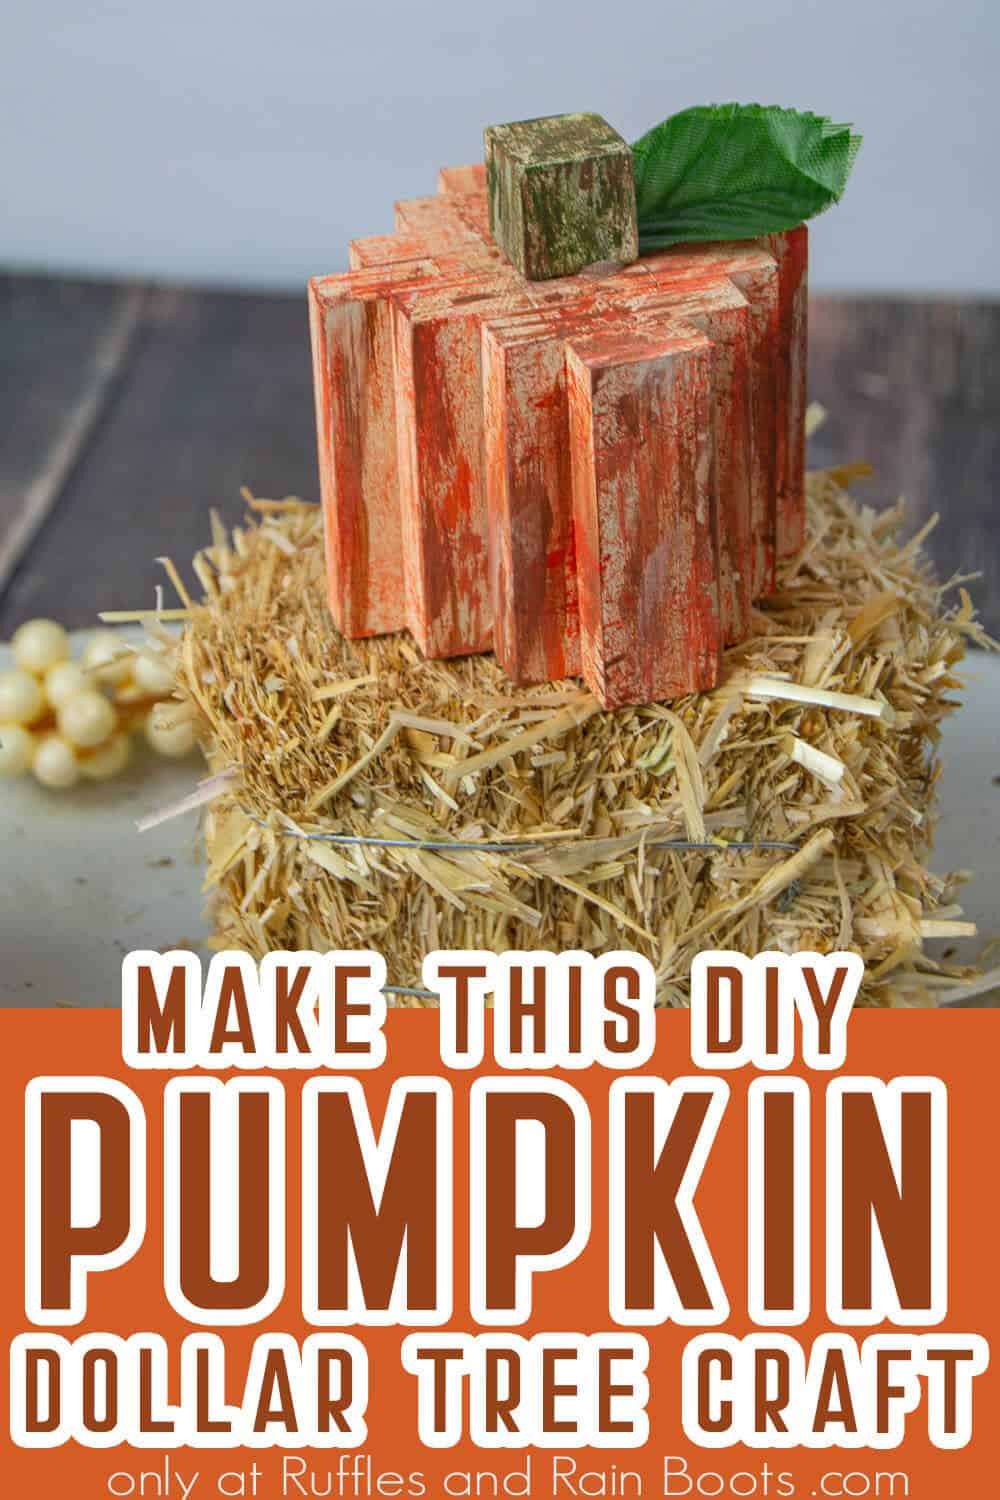 wood pumpkin from dollar tree supplies with text which reads make this diy pumpkin dollar tree craft